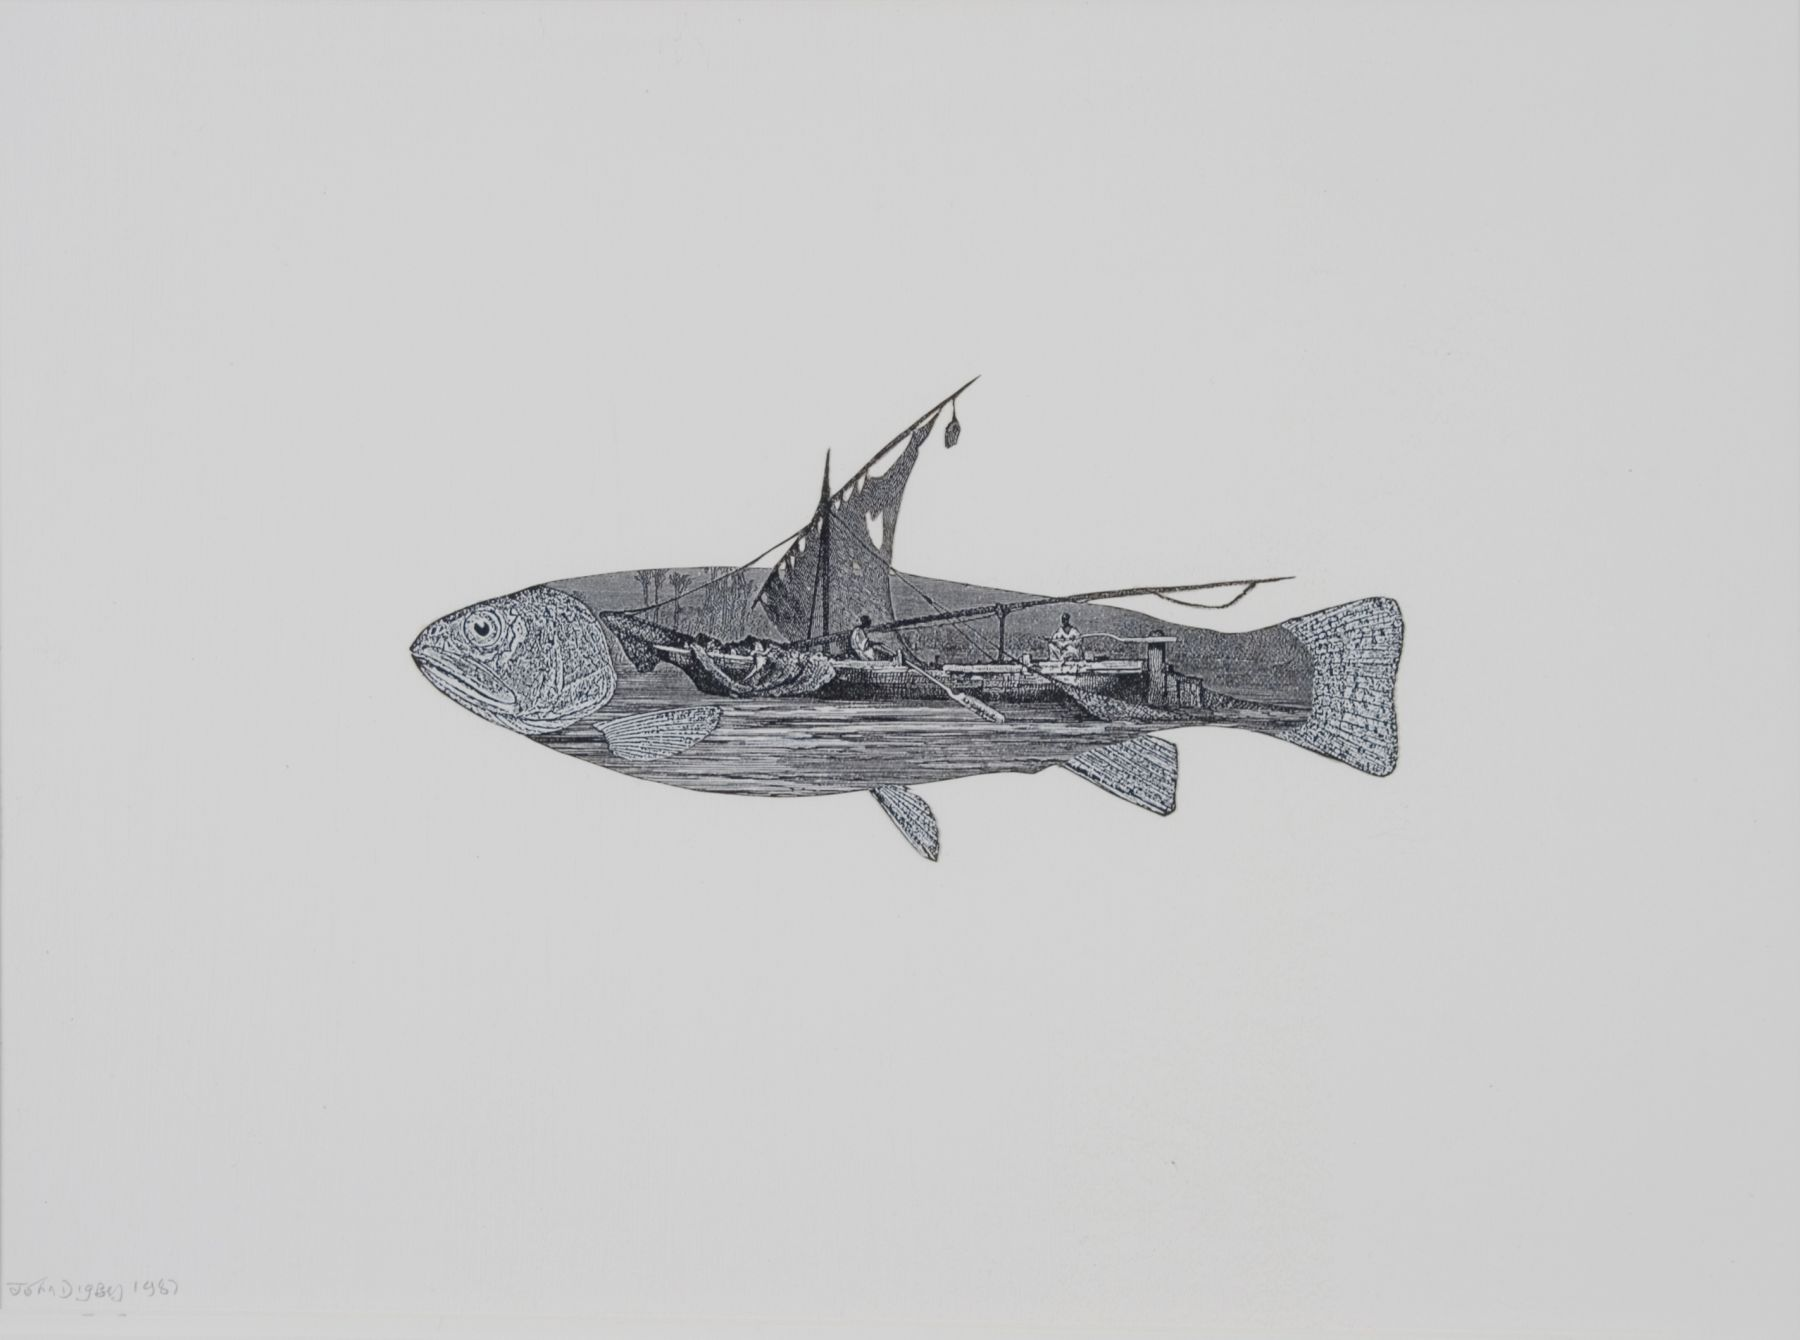 John Digby, Fish with Egyptian Boat, 1987, collage with pen and ink, 16 x 20 inches